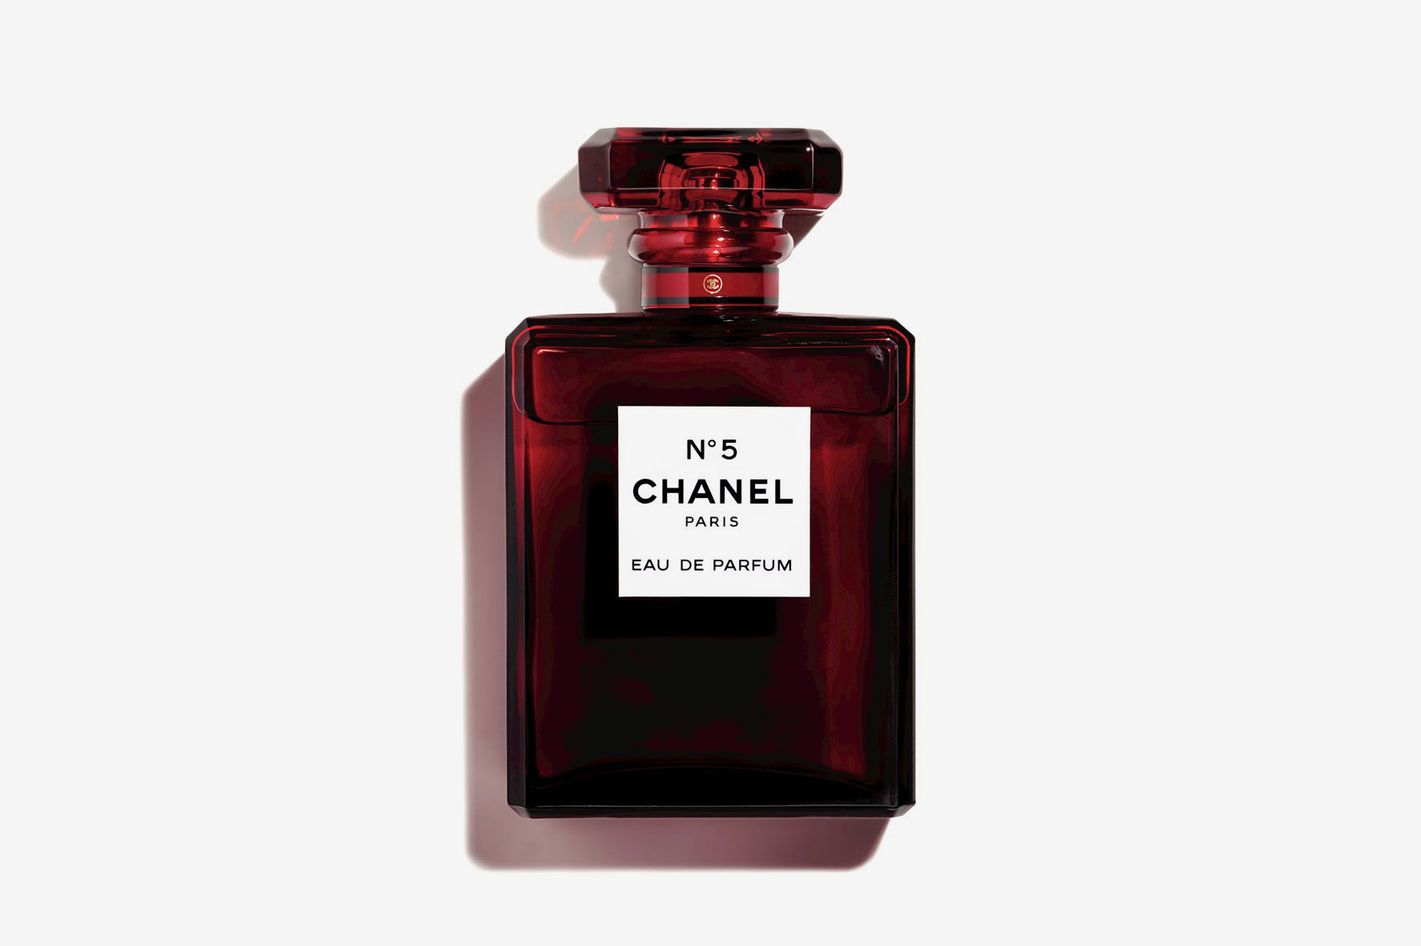 dcfead0a6167 Chanel No. 5 Will Be Released in Limited-Edition Red Bottles